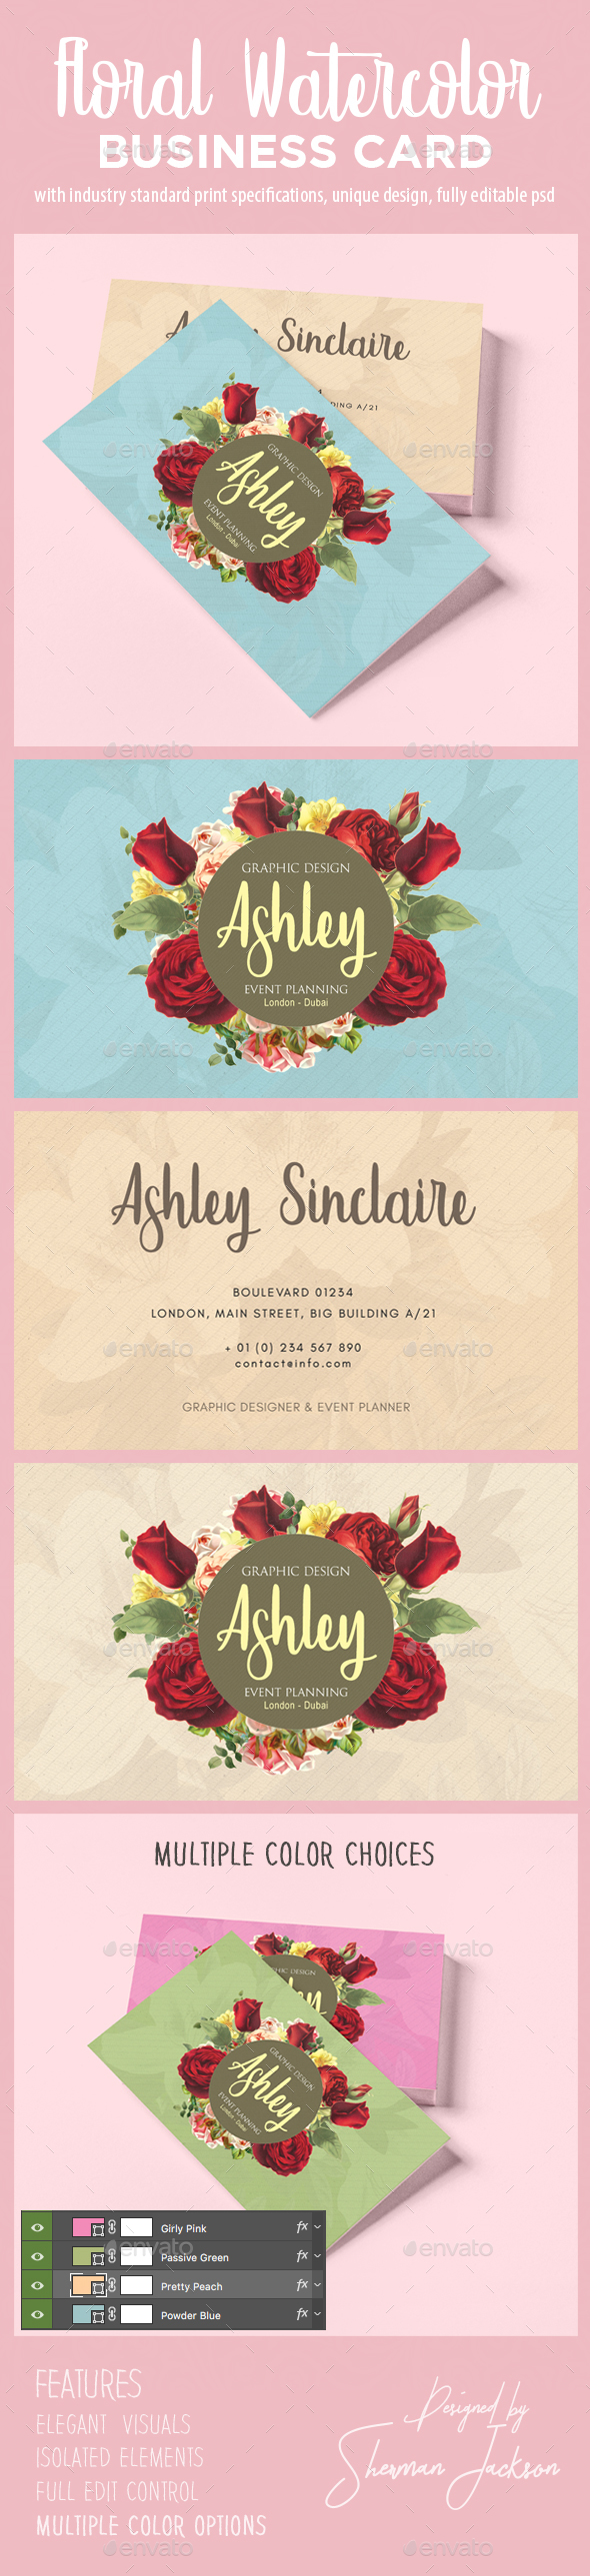 Floral Watercolor Business Card V.2 - Business Cards Print Templates